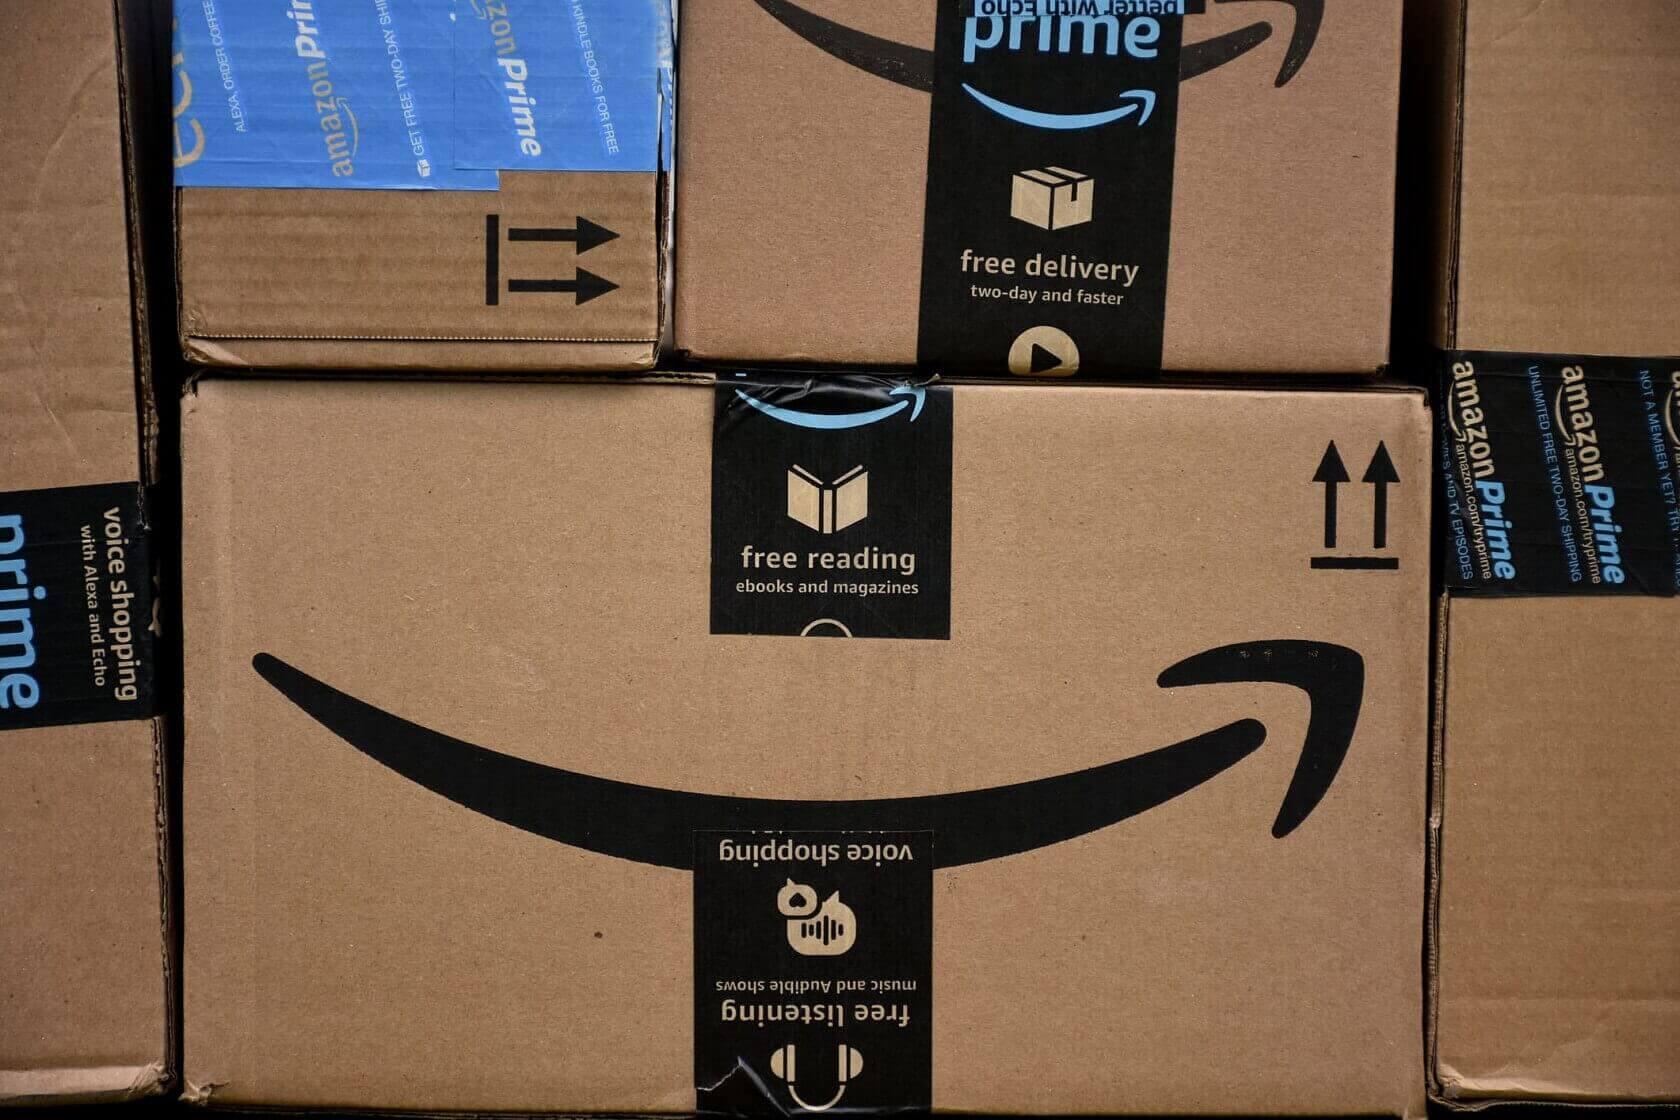 Germany and Canada launch their own antitrust investigations into Amazon